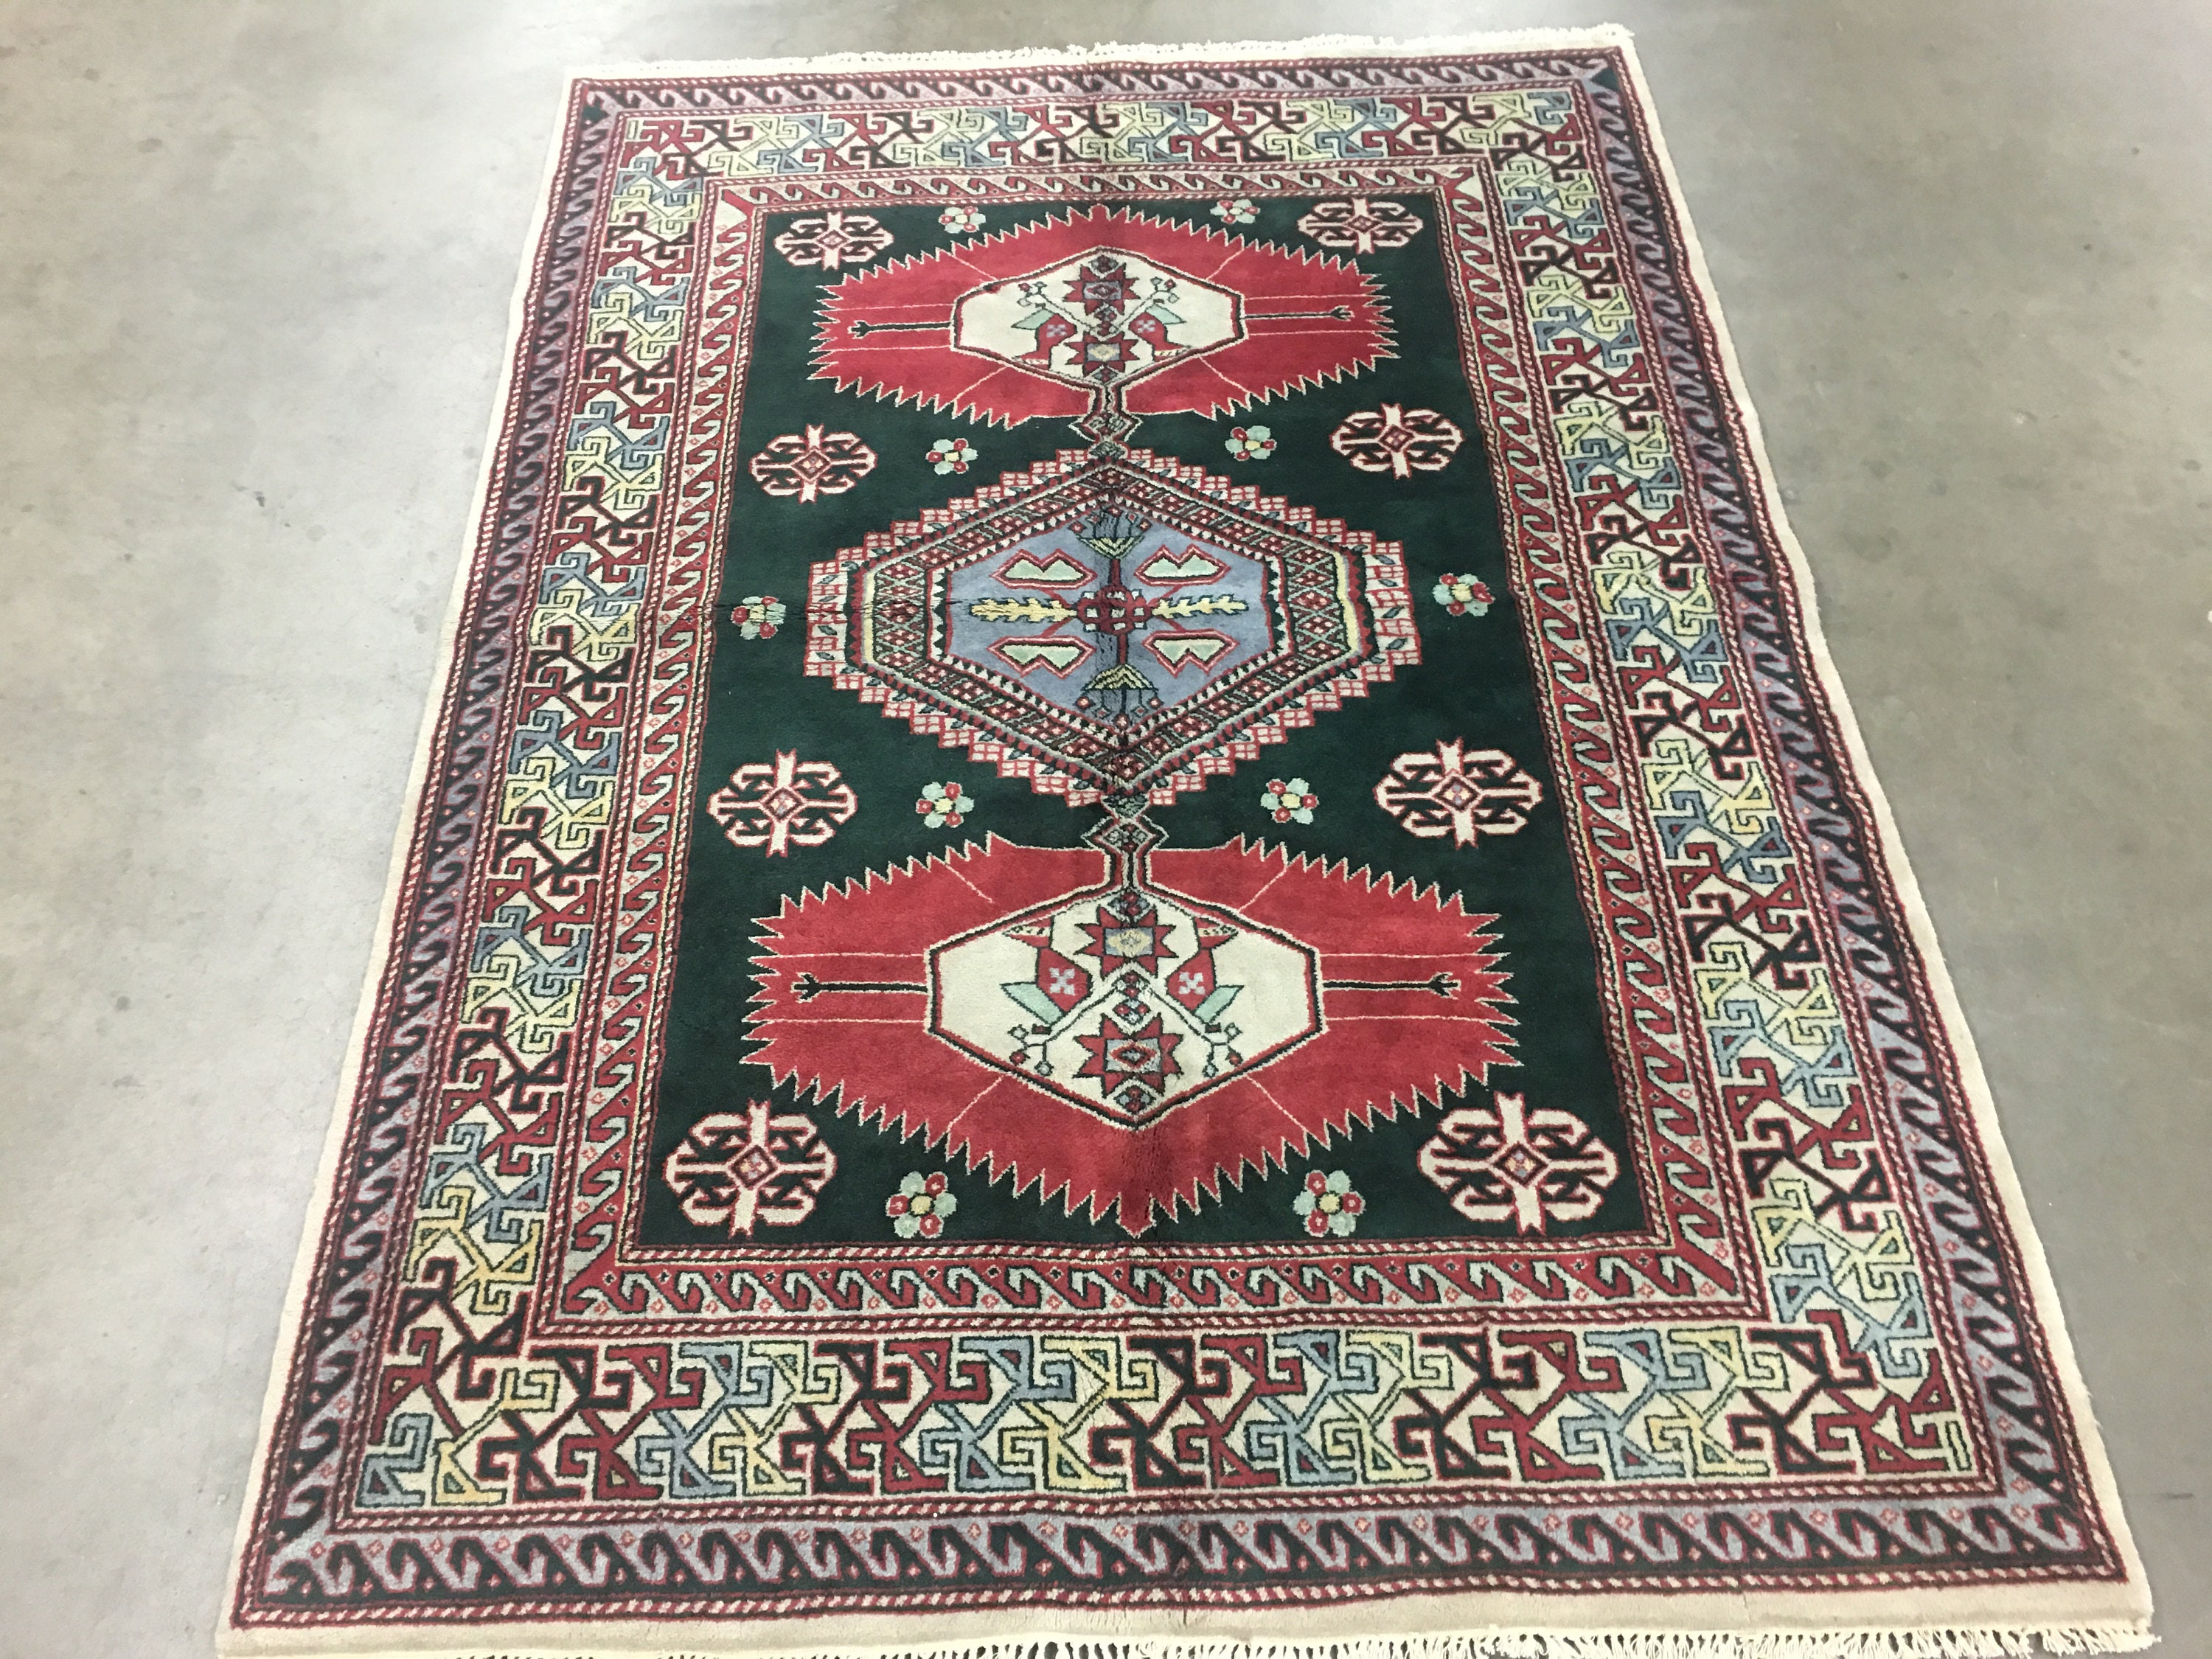 6x8 Heriz Area Rug Hand Knotted Emerald Green Design Oriental Style Wool Carpet 5 7 X 8